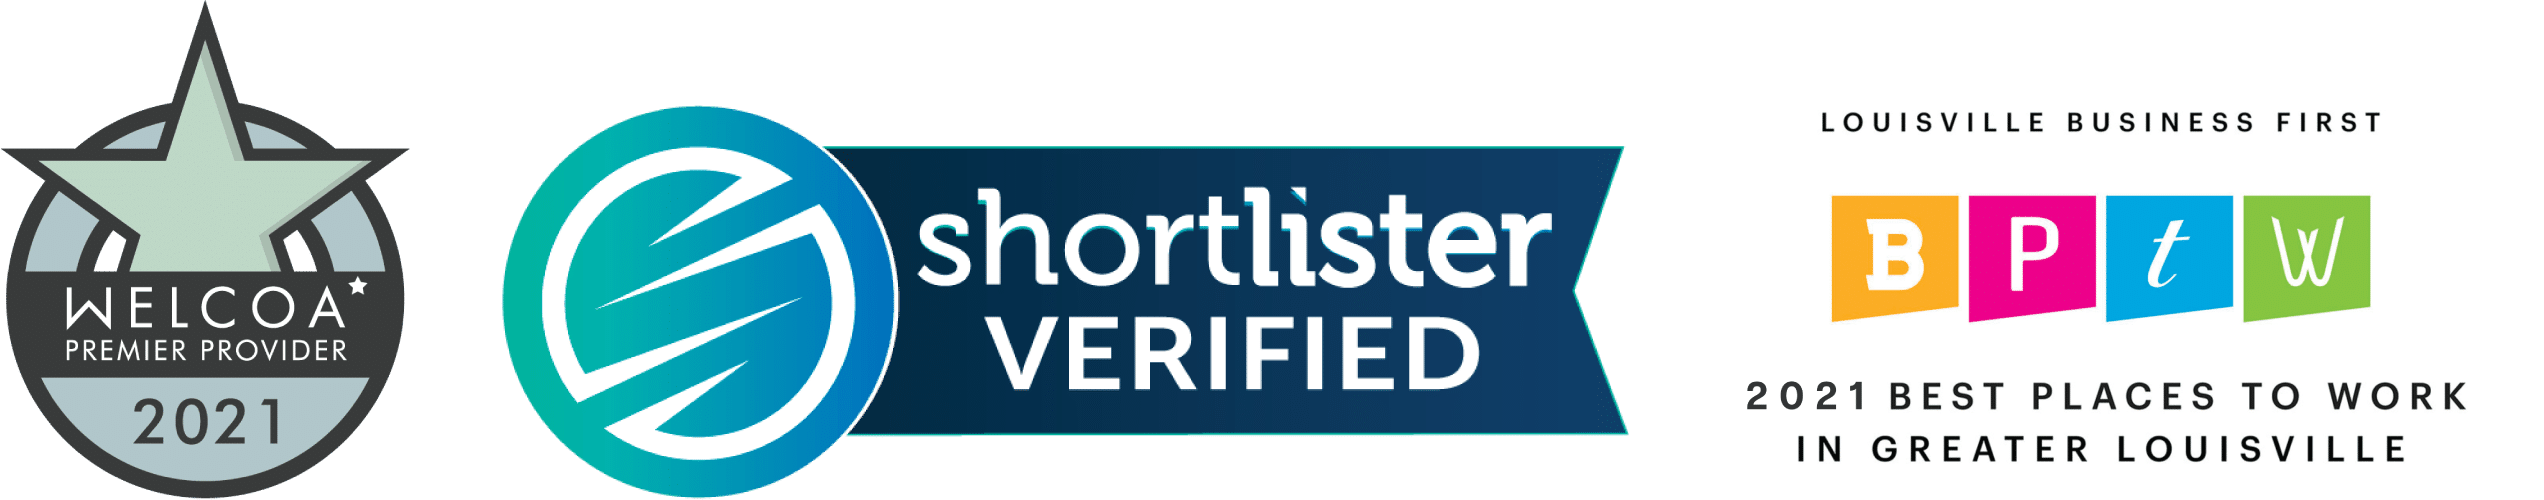 SentryHealth, Welcoa Premier Provider, Shortlister Verified, Best Places to Work